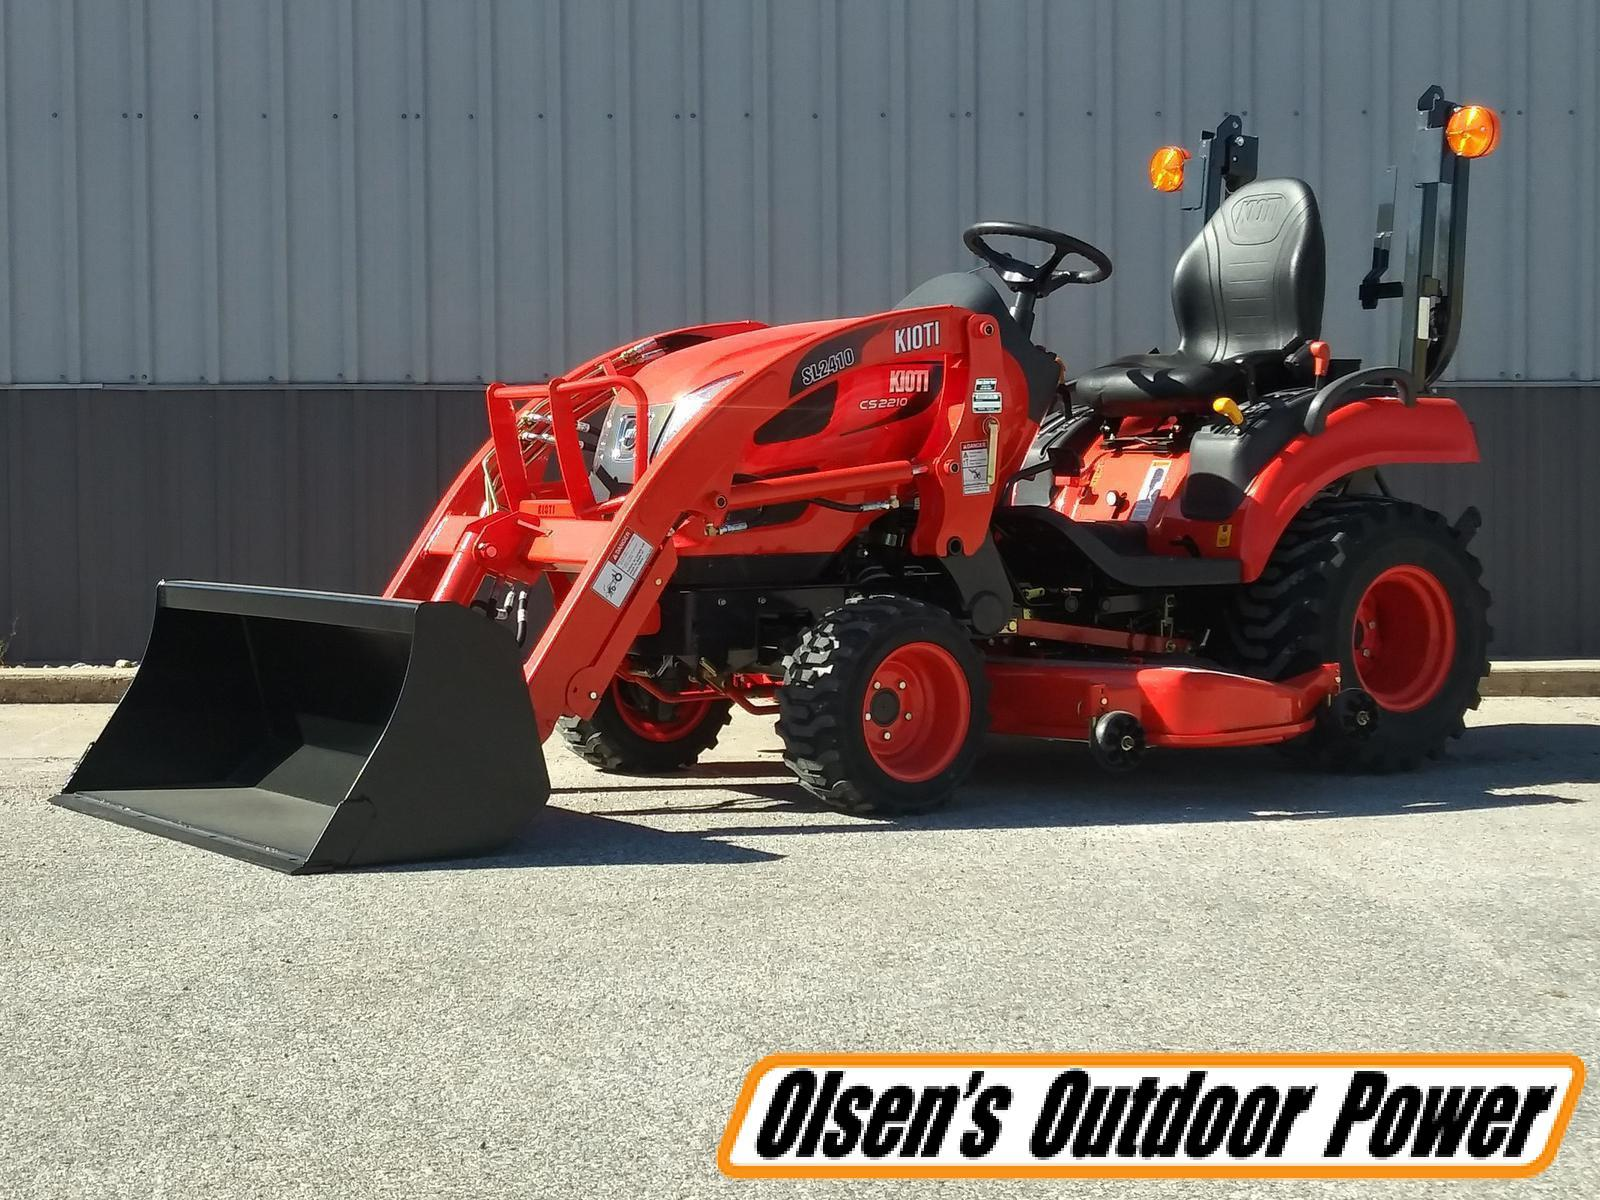 Whether you're tilling the soil to plant a springtime garden or getting ready to clear the land for your new home, a tractor is definitely a handy piece of equipment to own. Kioti Cs2210hb Subcompact Tractor W Loader Mower Deck For Sale In Atlantic Ia Olsen S Outdoor Power